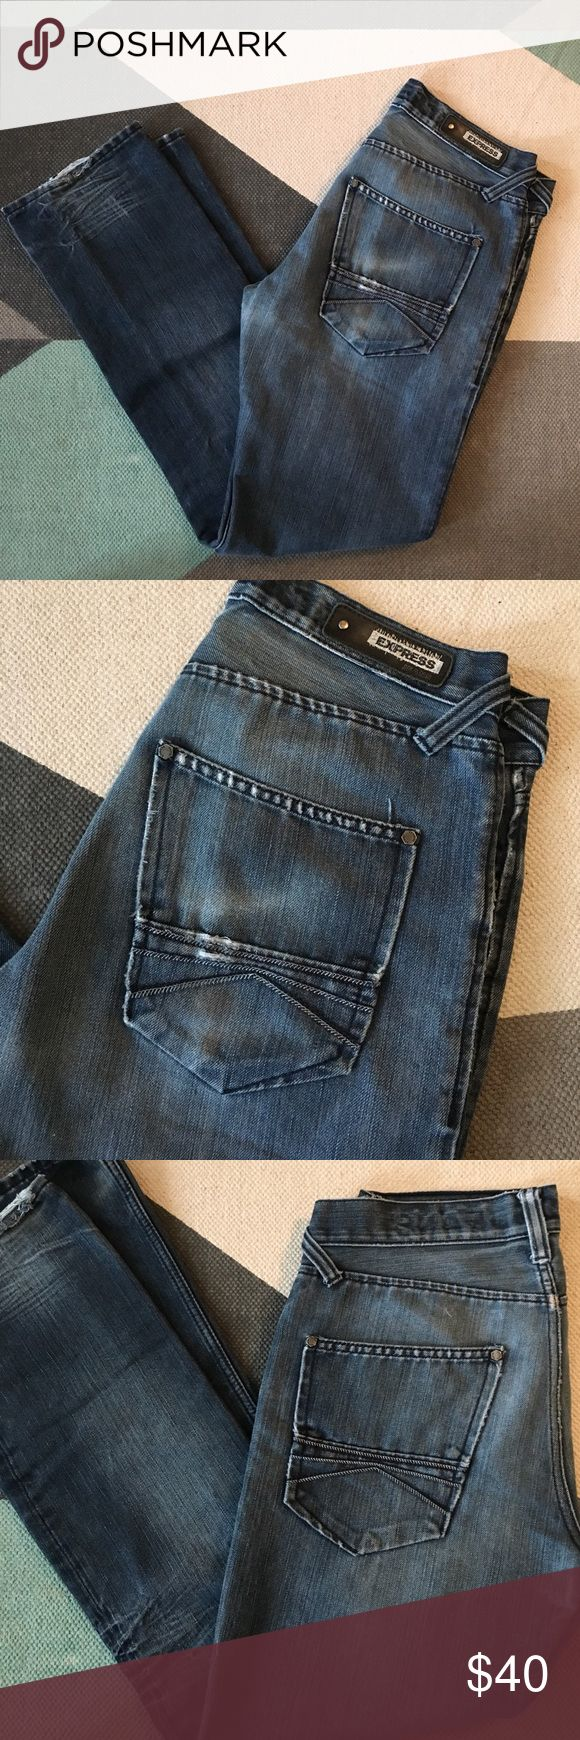 Express men's jeans 30x32 Express men's jeans with distressing at back of legs and bottom. Button fly. Slight ripping at pockets and bottom as shown. Express Jeans Slim Straight